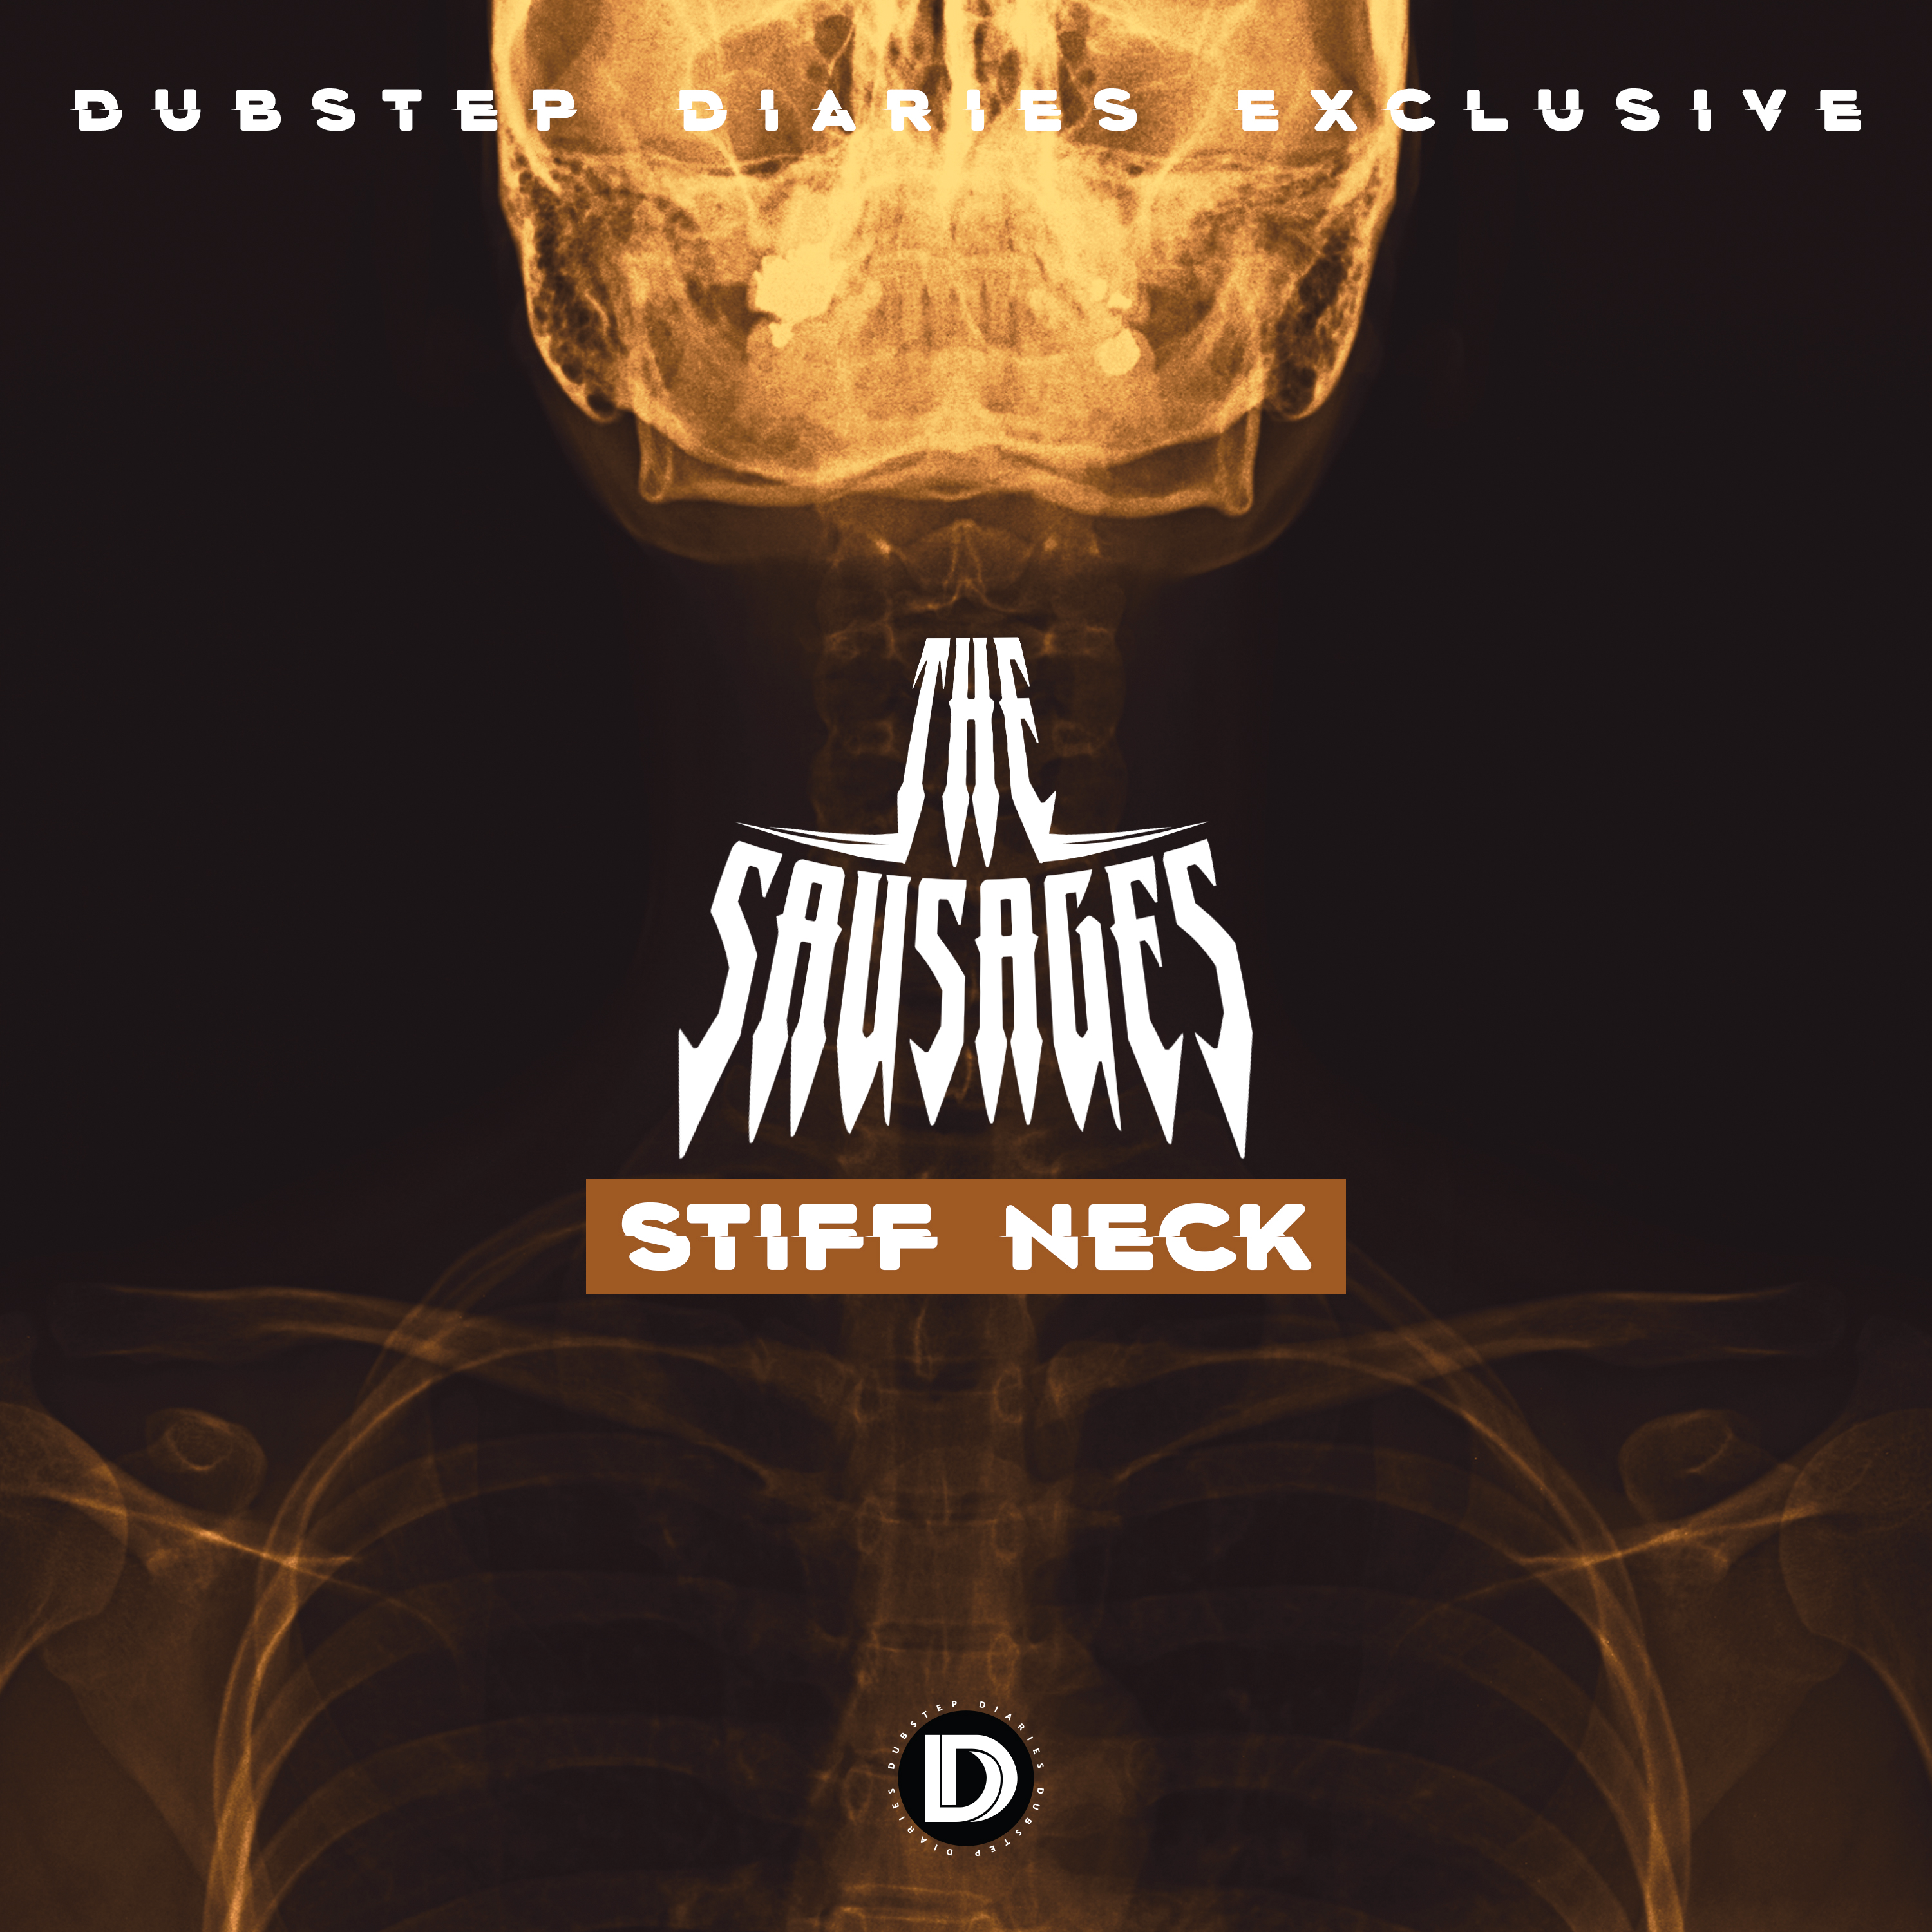 The Sausages - Stiff Neck [Dubstep Diaries Exclusive] Image